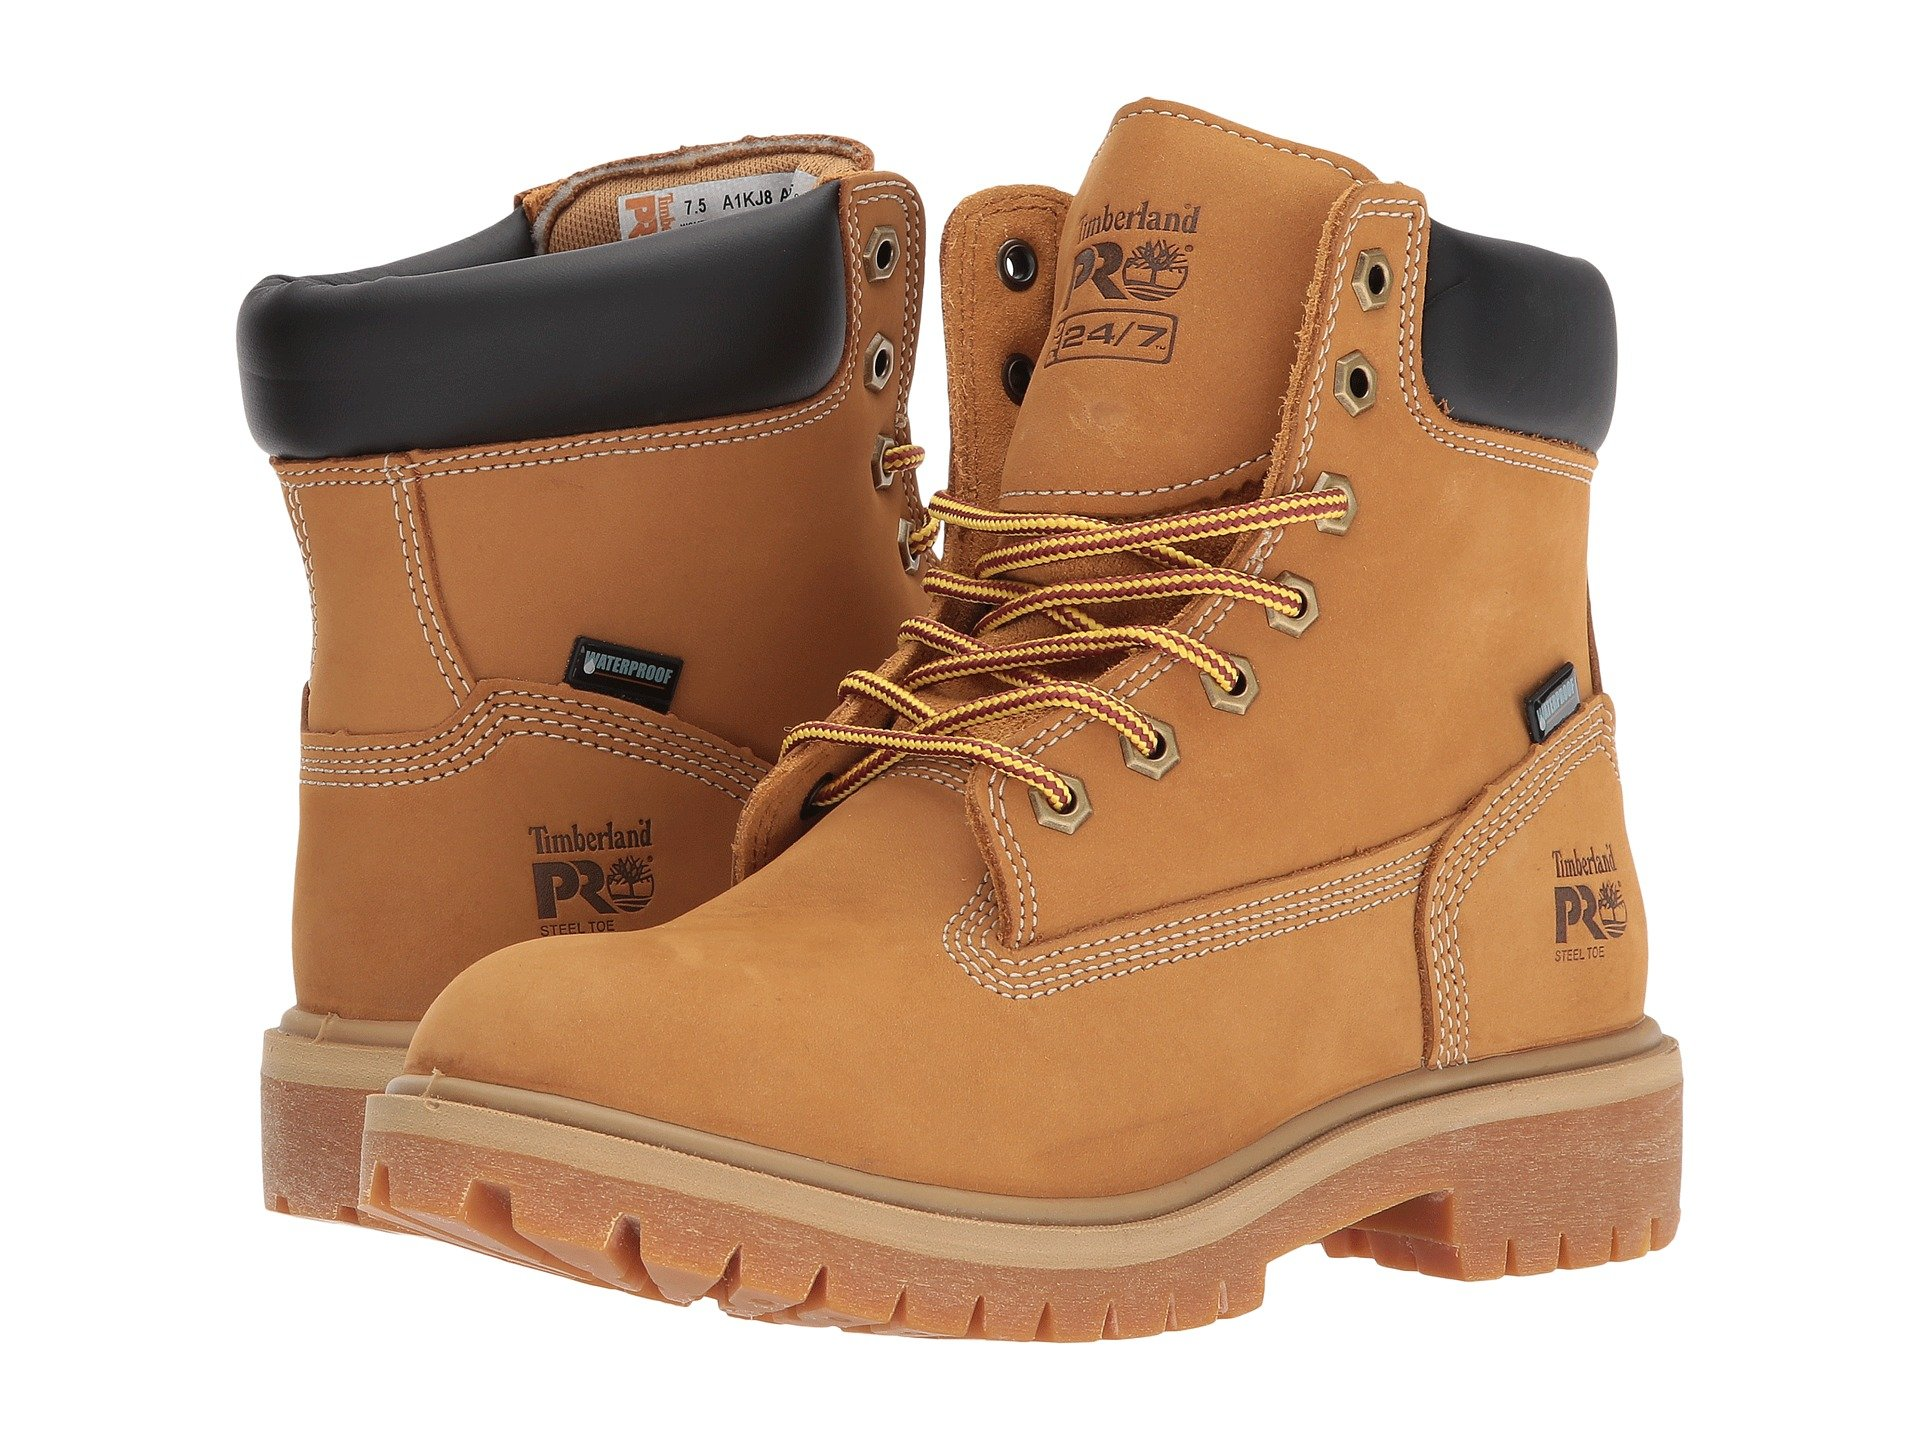 cb25c34500 Wheat Nubuck Leather. 428. Timberland PRO. Direct Attach 6